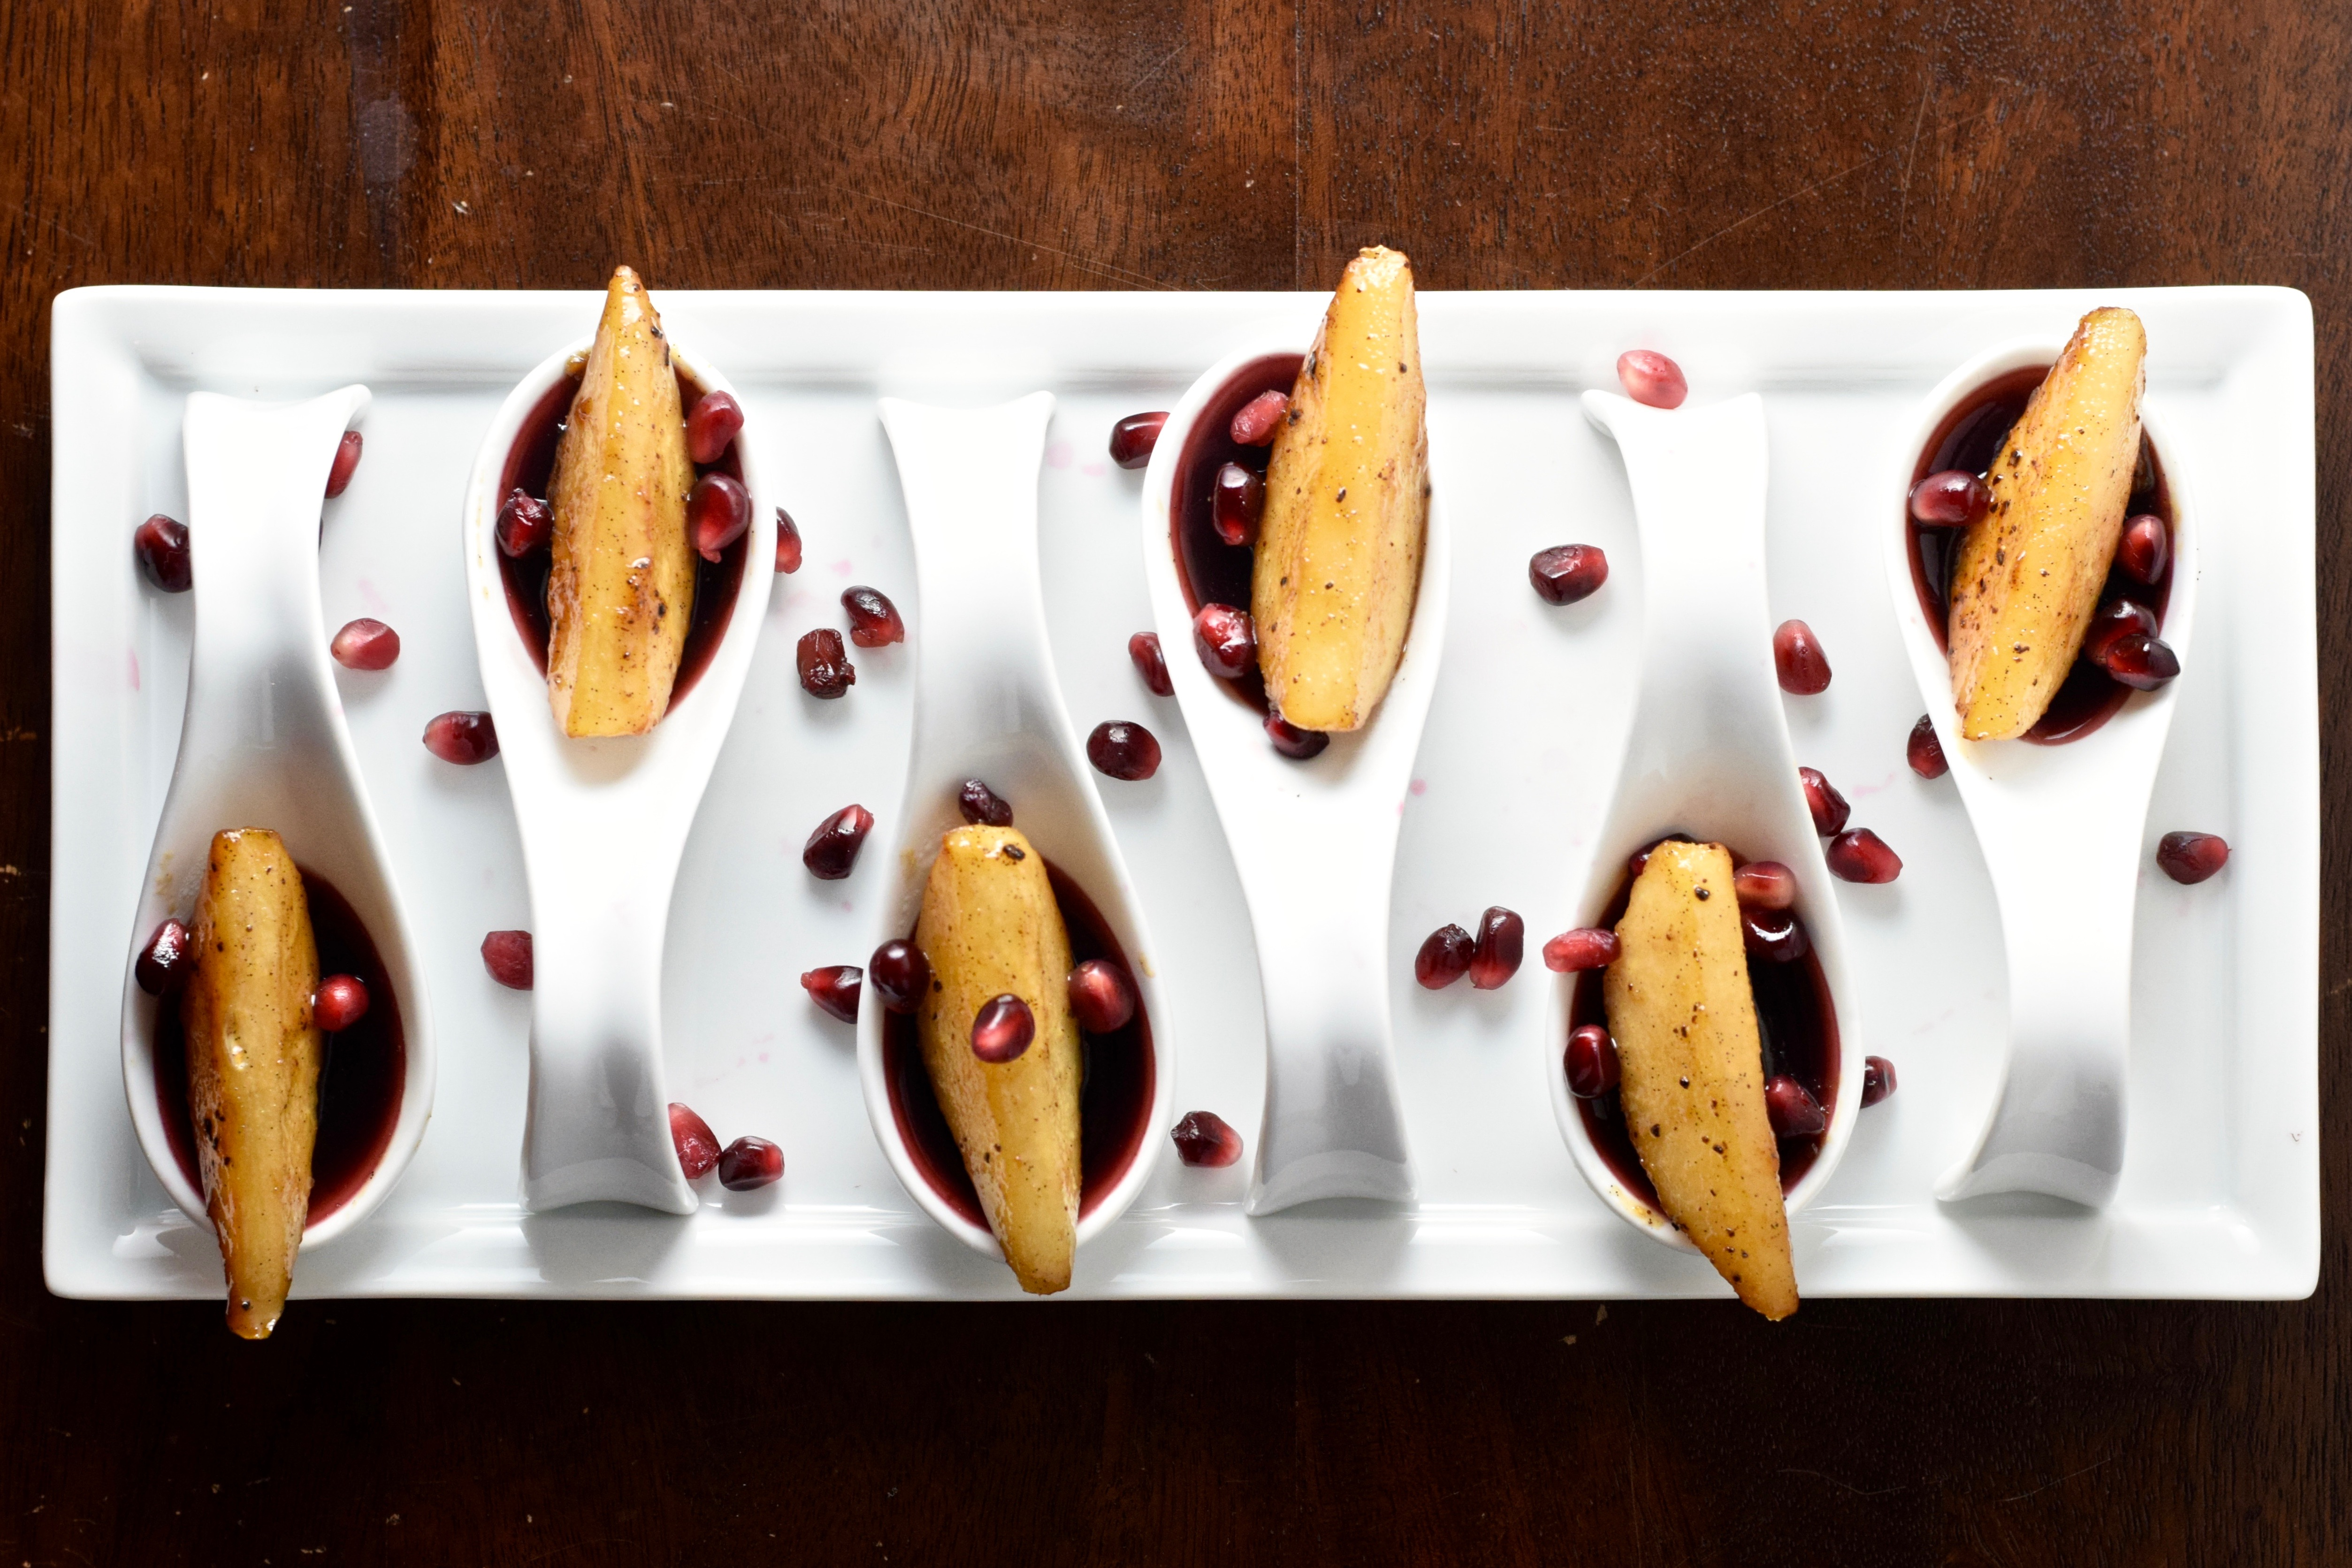 Vegan Pomegranate Sangria Gels with Brown Butter Brandy Caramelized Pears